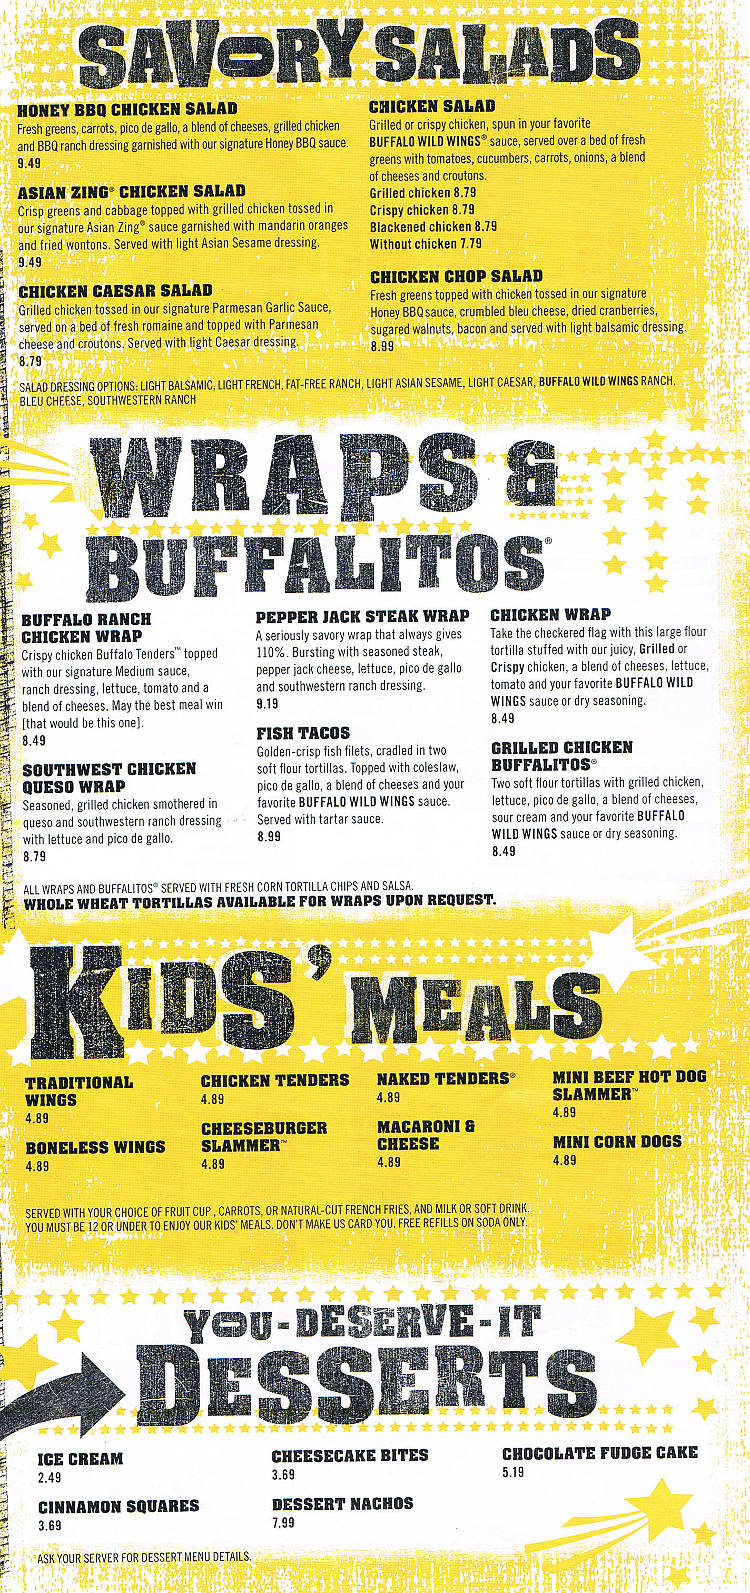 buffalo wild wings menu - auburn maine - menusinla - lewiston